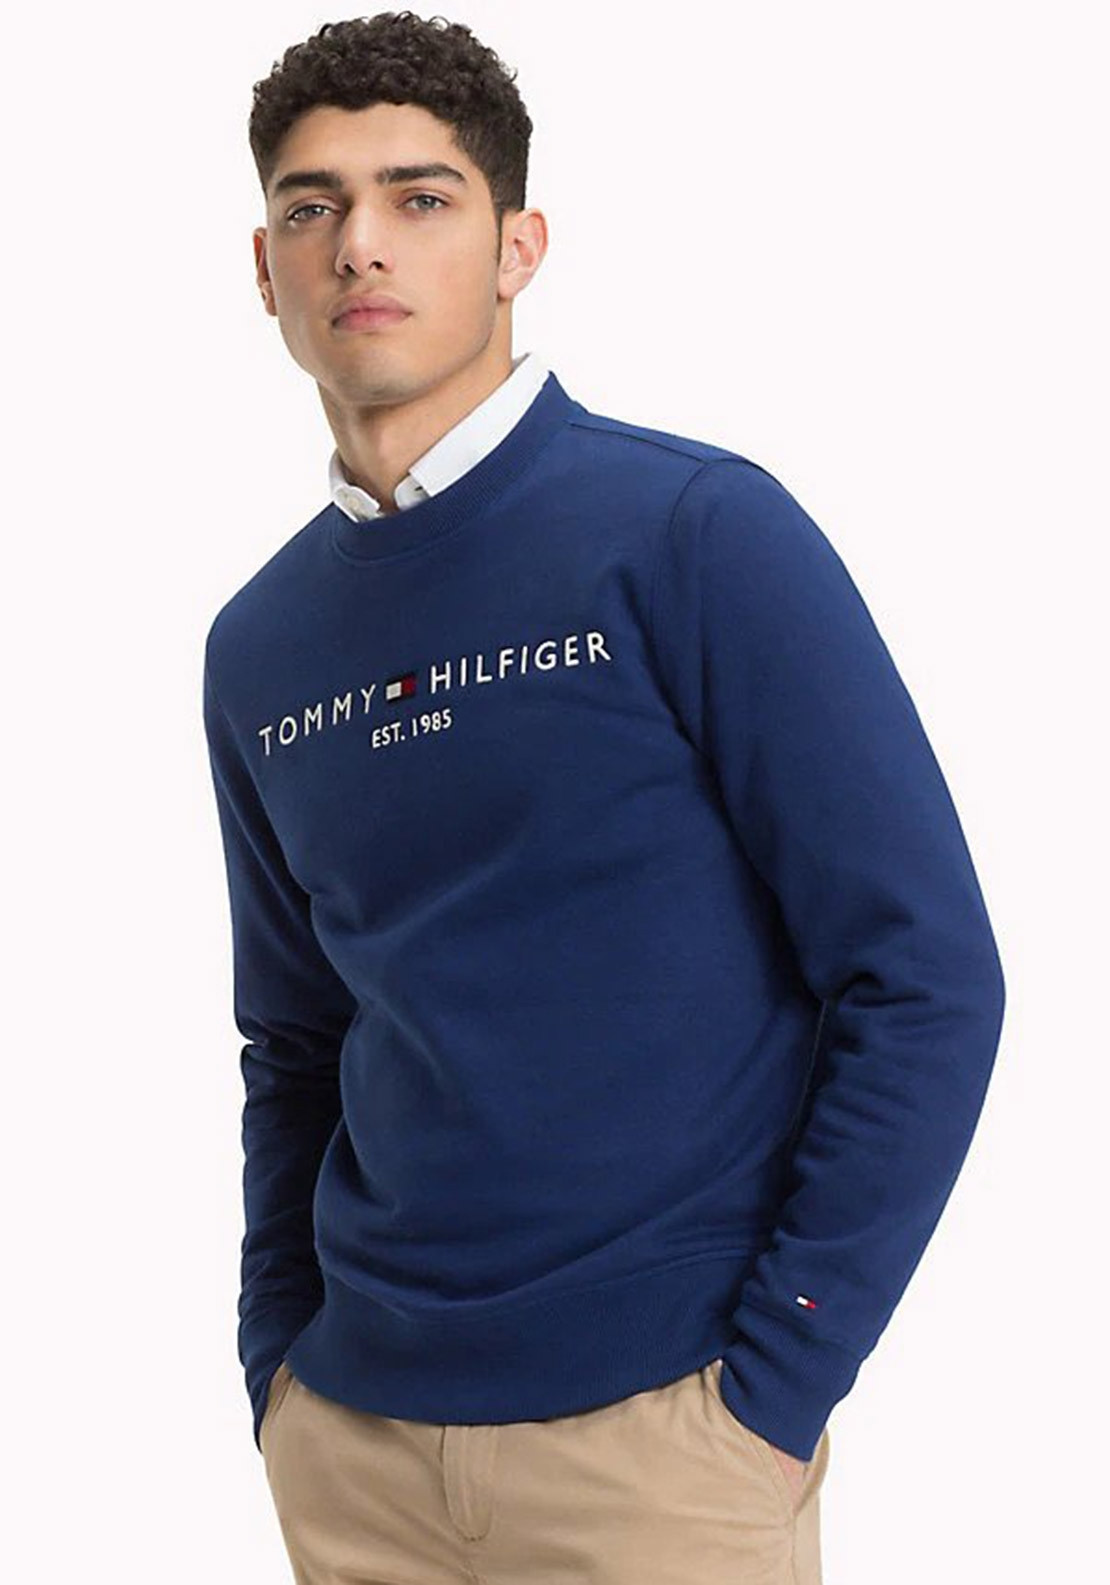 02a6b38c Tommy Hilfiger Mens Logo Sweatshirt, Blue. Be the first to review this  product